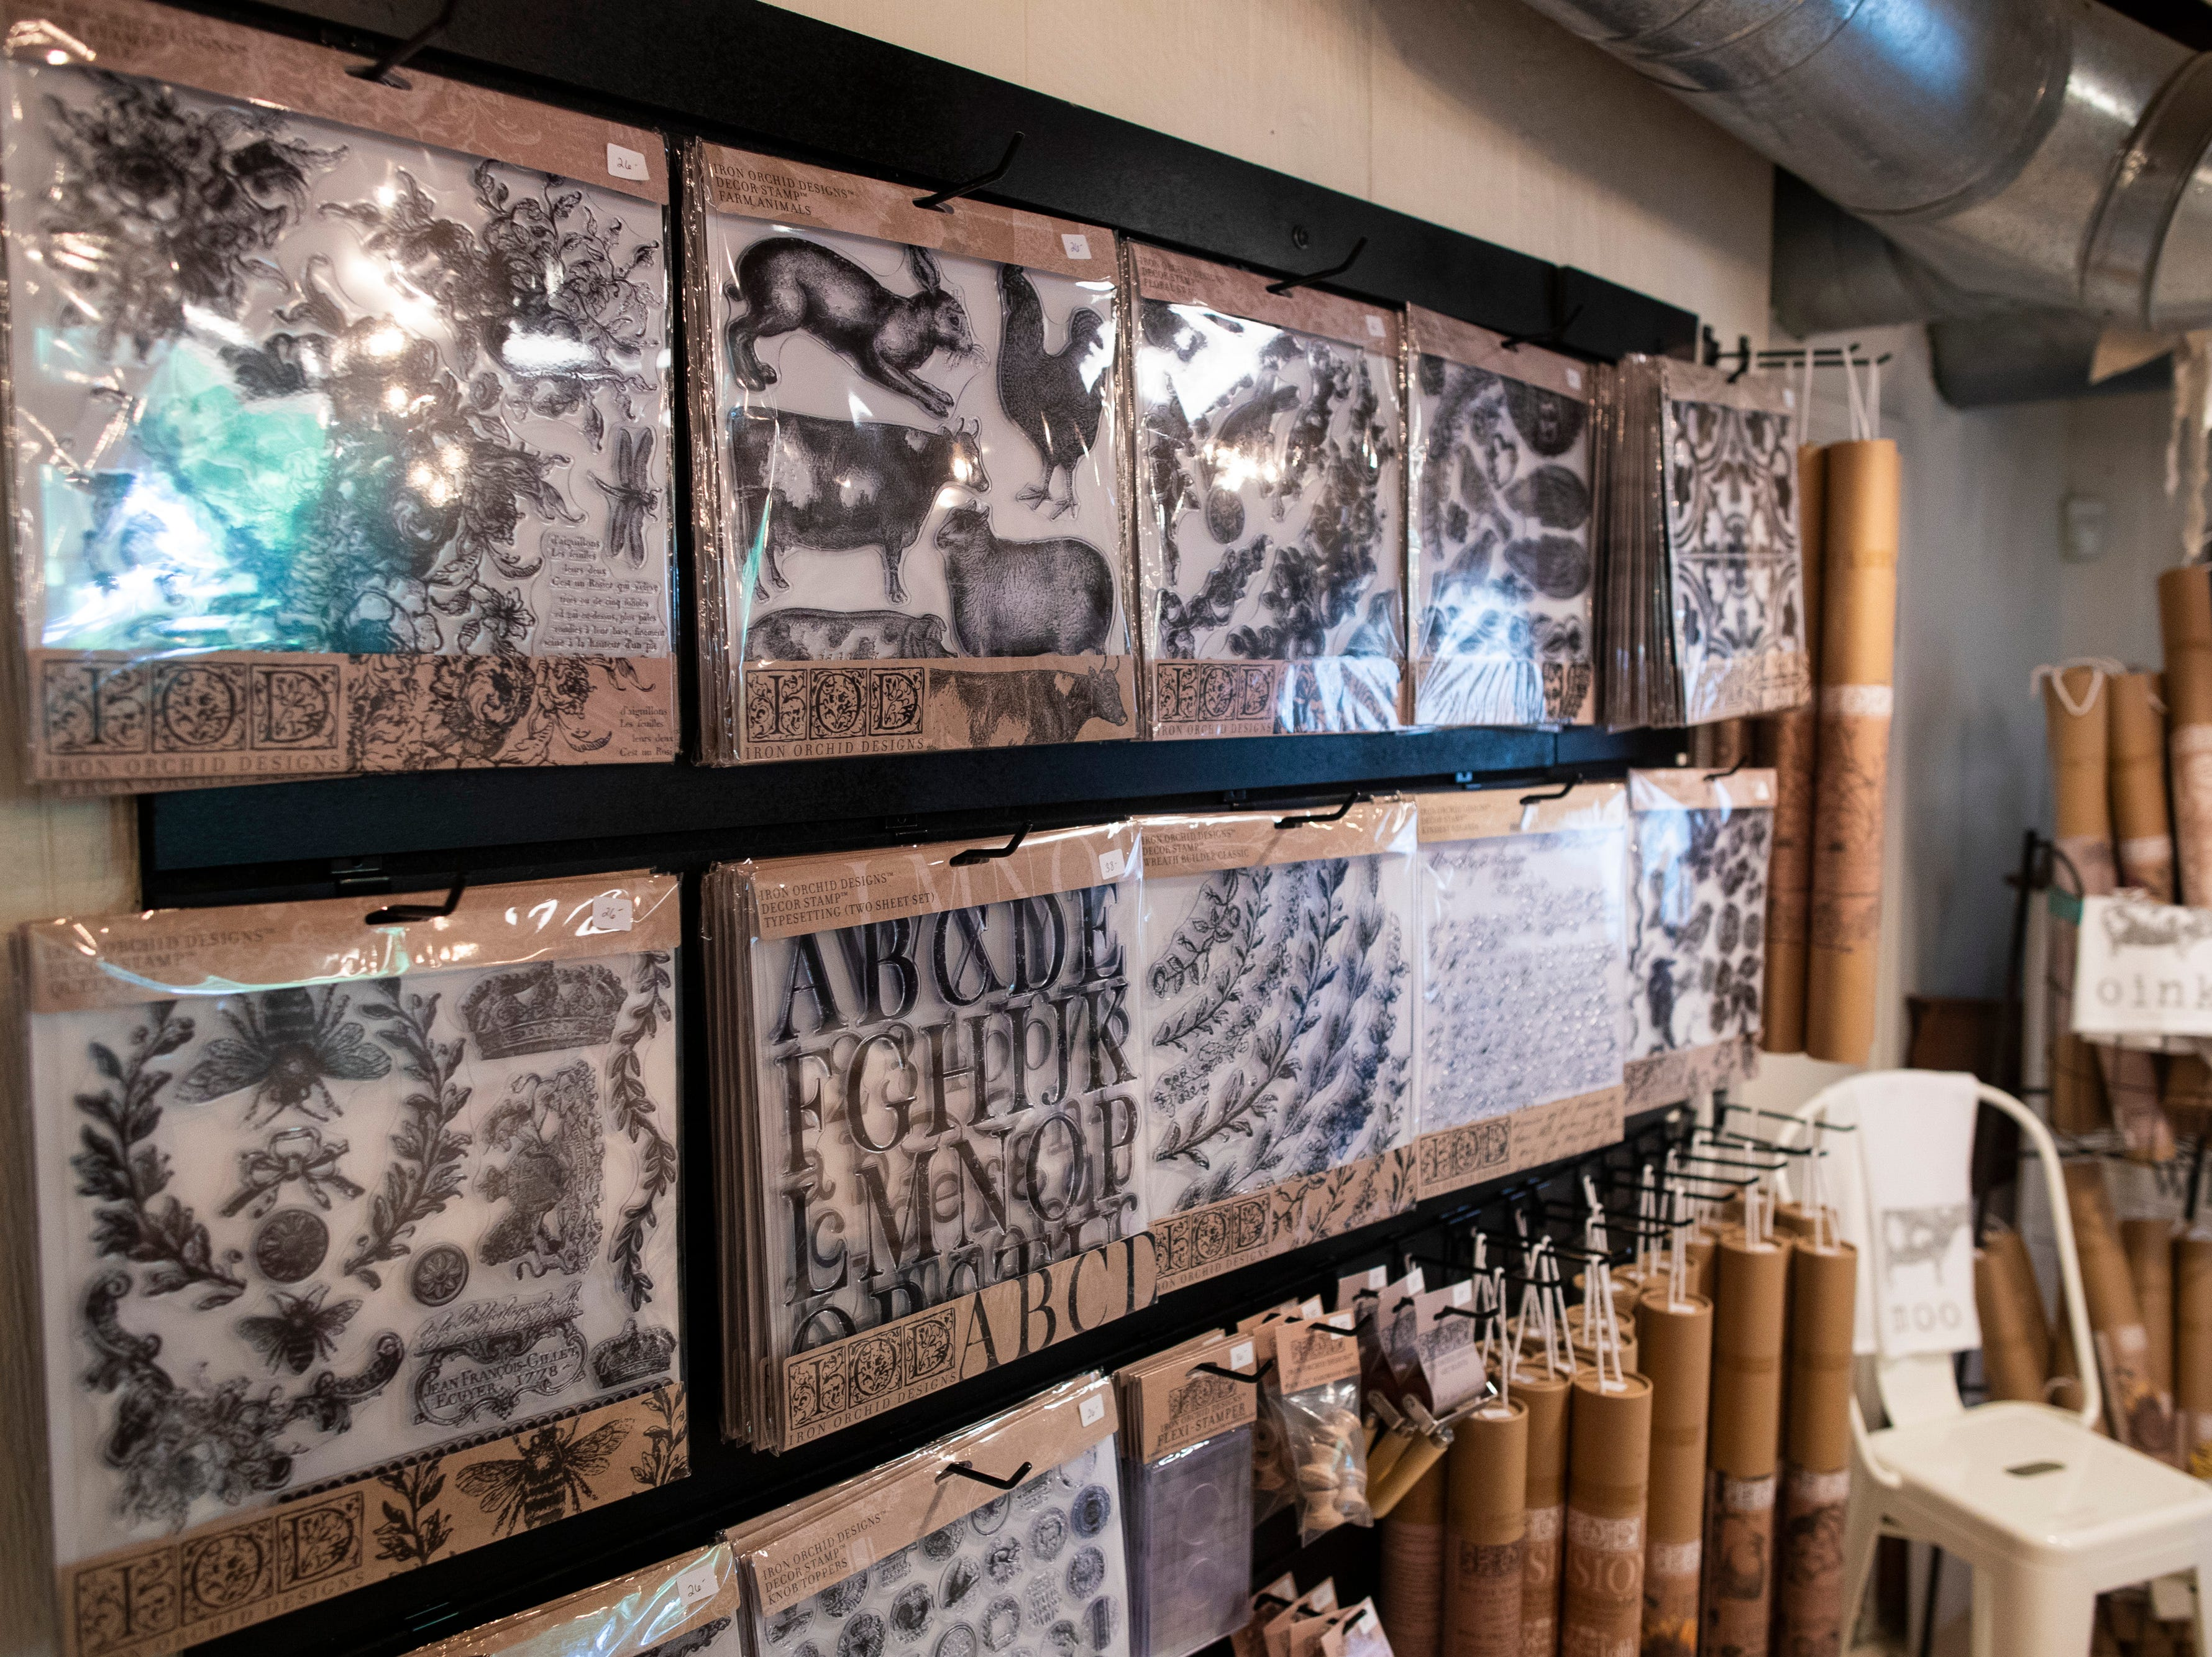 Iron Orchid stamps and transfers used for DIY projects inside Gather in the Middletown neighborhood. May 8, 2019